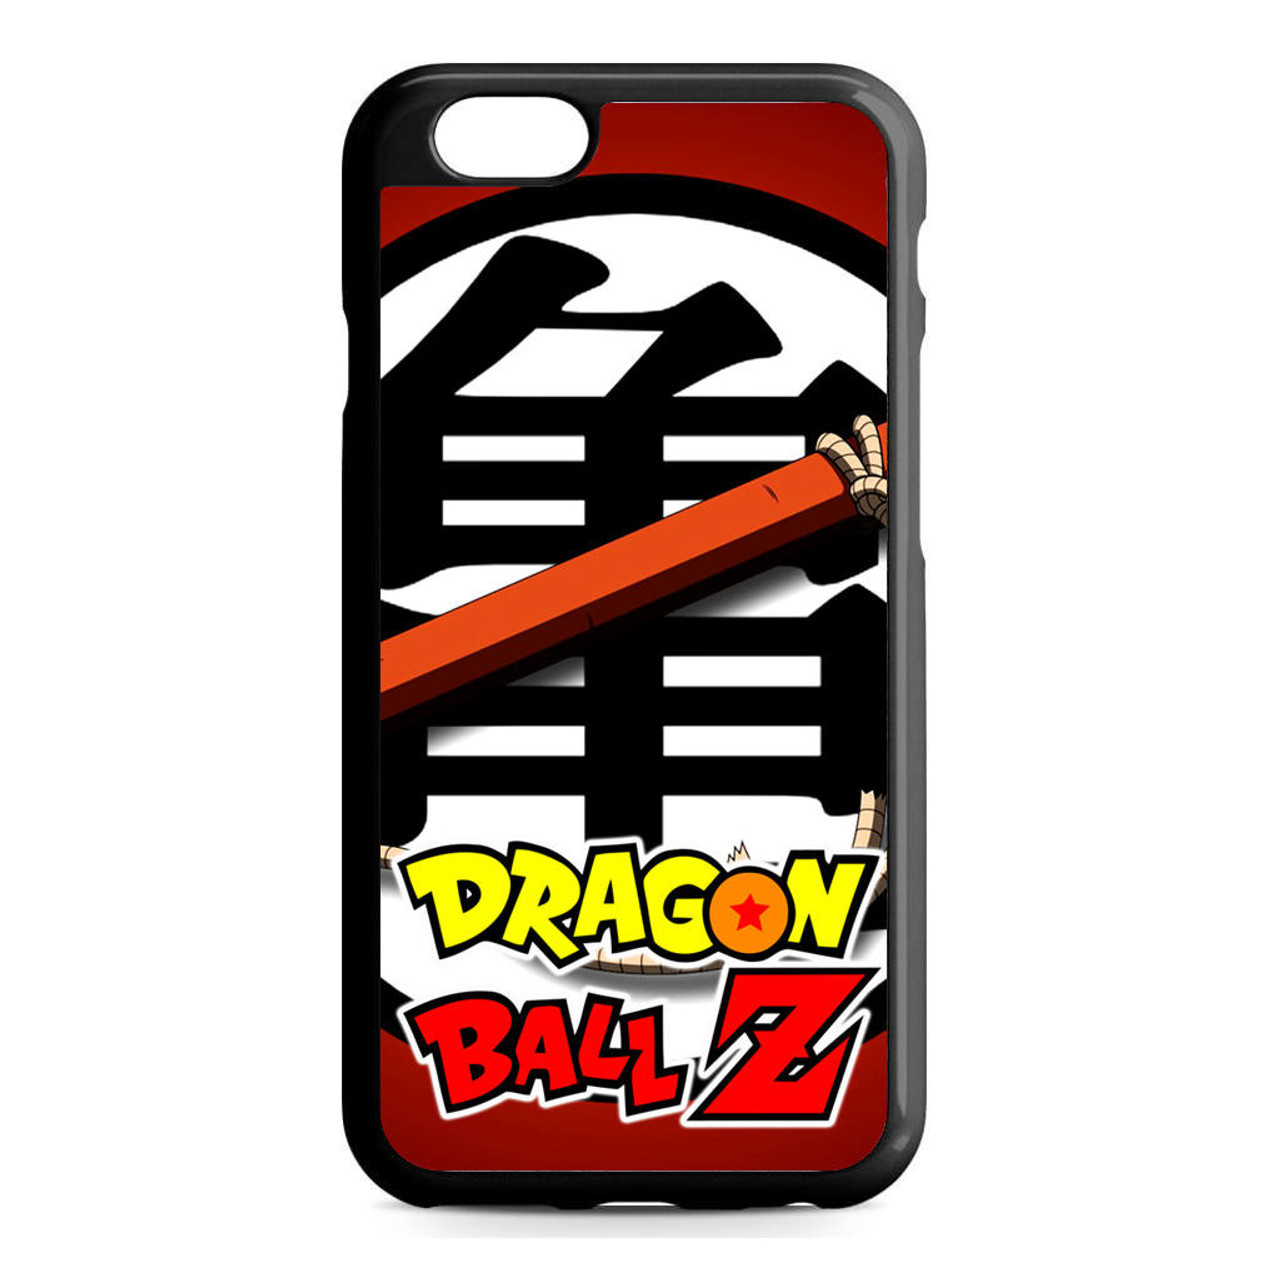 dragonball z phone case iphone 6